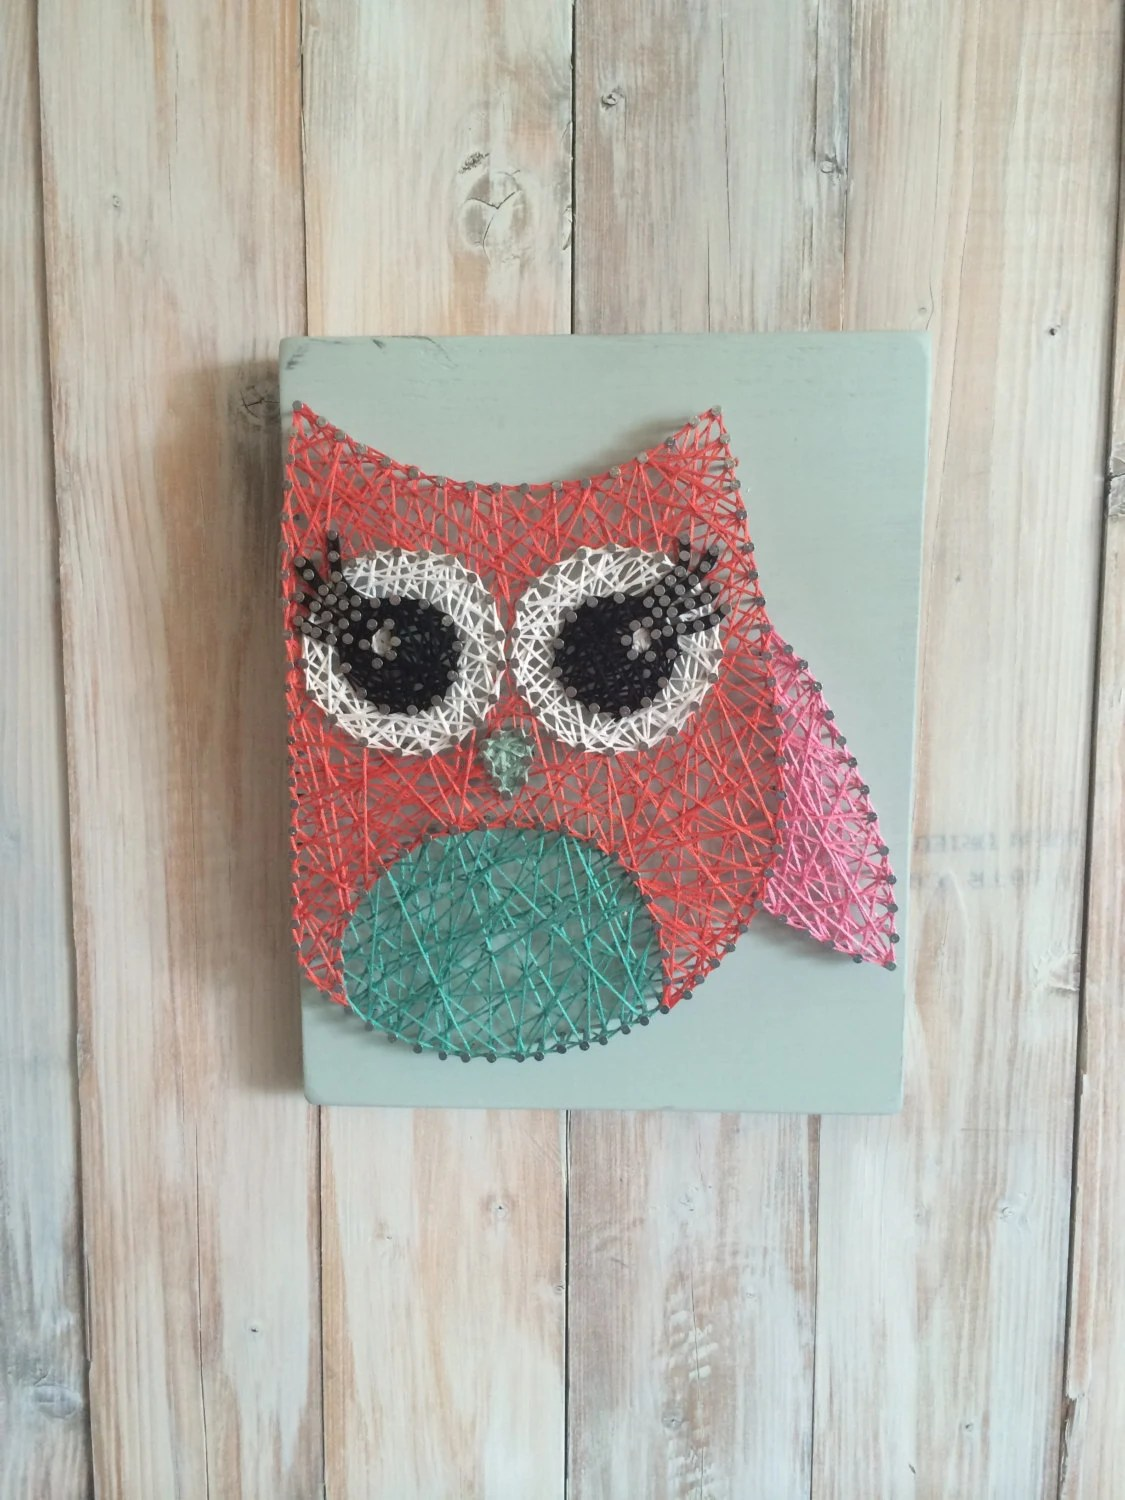 Cute Owl Decor Owl String Art Owl Decor String Art Girl S Room Decor Nursery Decor Owl Baby Shower Owl Nursery Cute Owls Woodland Decor Baby Gift